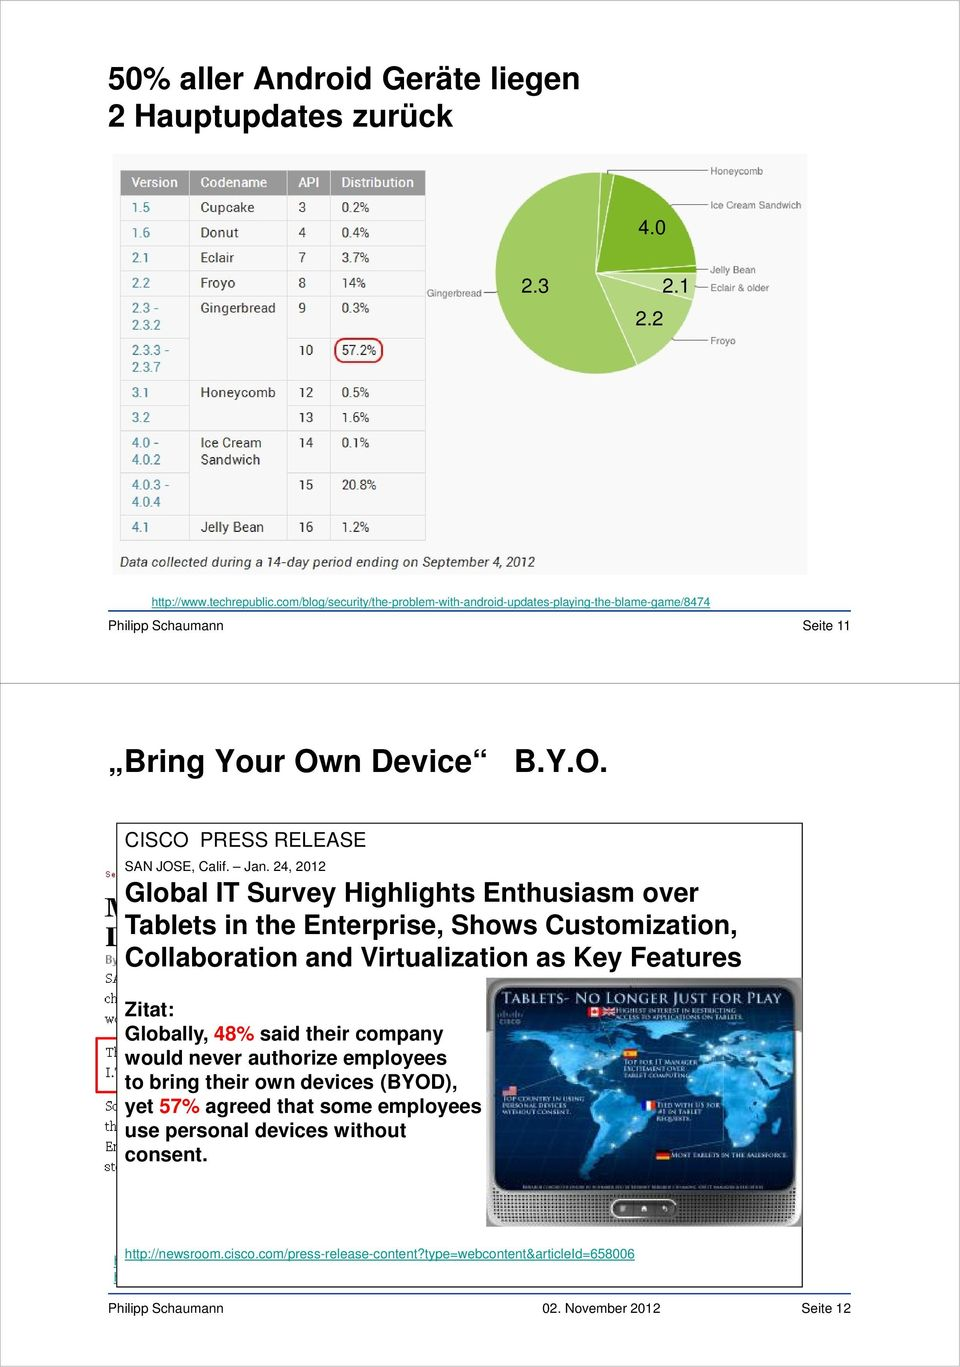 24, 2012 Global IT Survey Highlights Enthusiasm over Tablets in the Enterprise, Shows Customization, Collaboration and Virtualization as Key Features Zitat: Globally, 48% said their company would